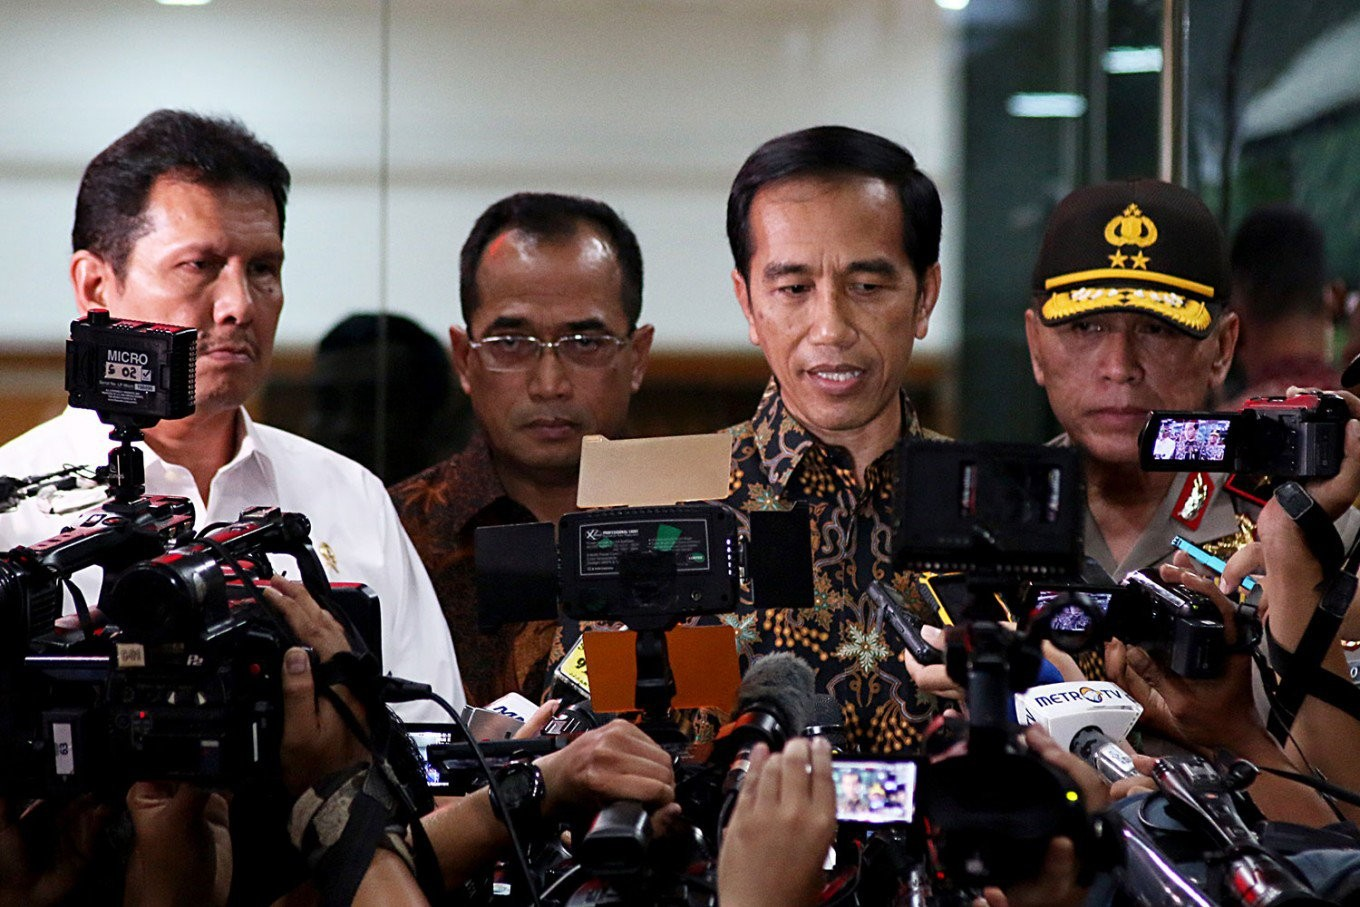 Indonesia's GDP to reach $9.1 trillion by 2045: Jokowi